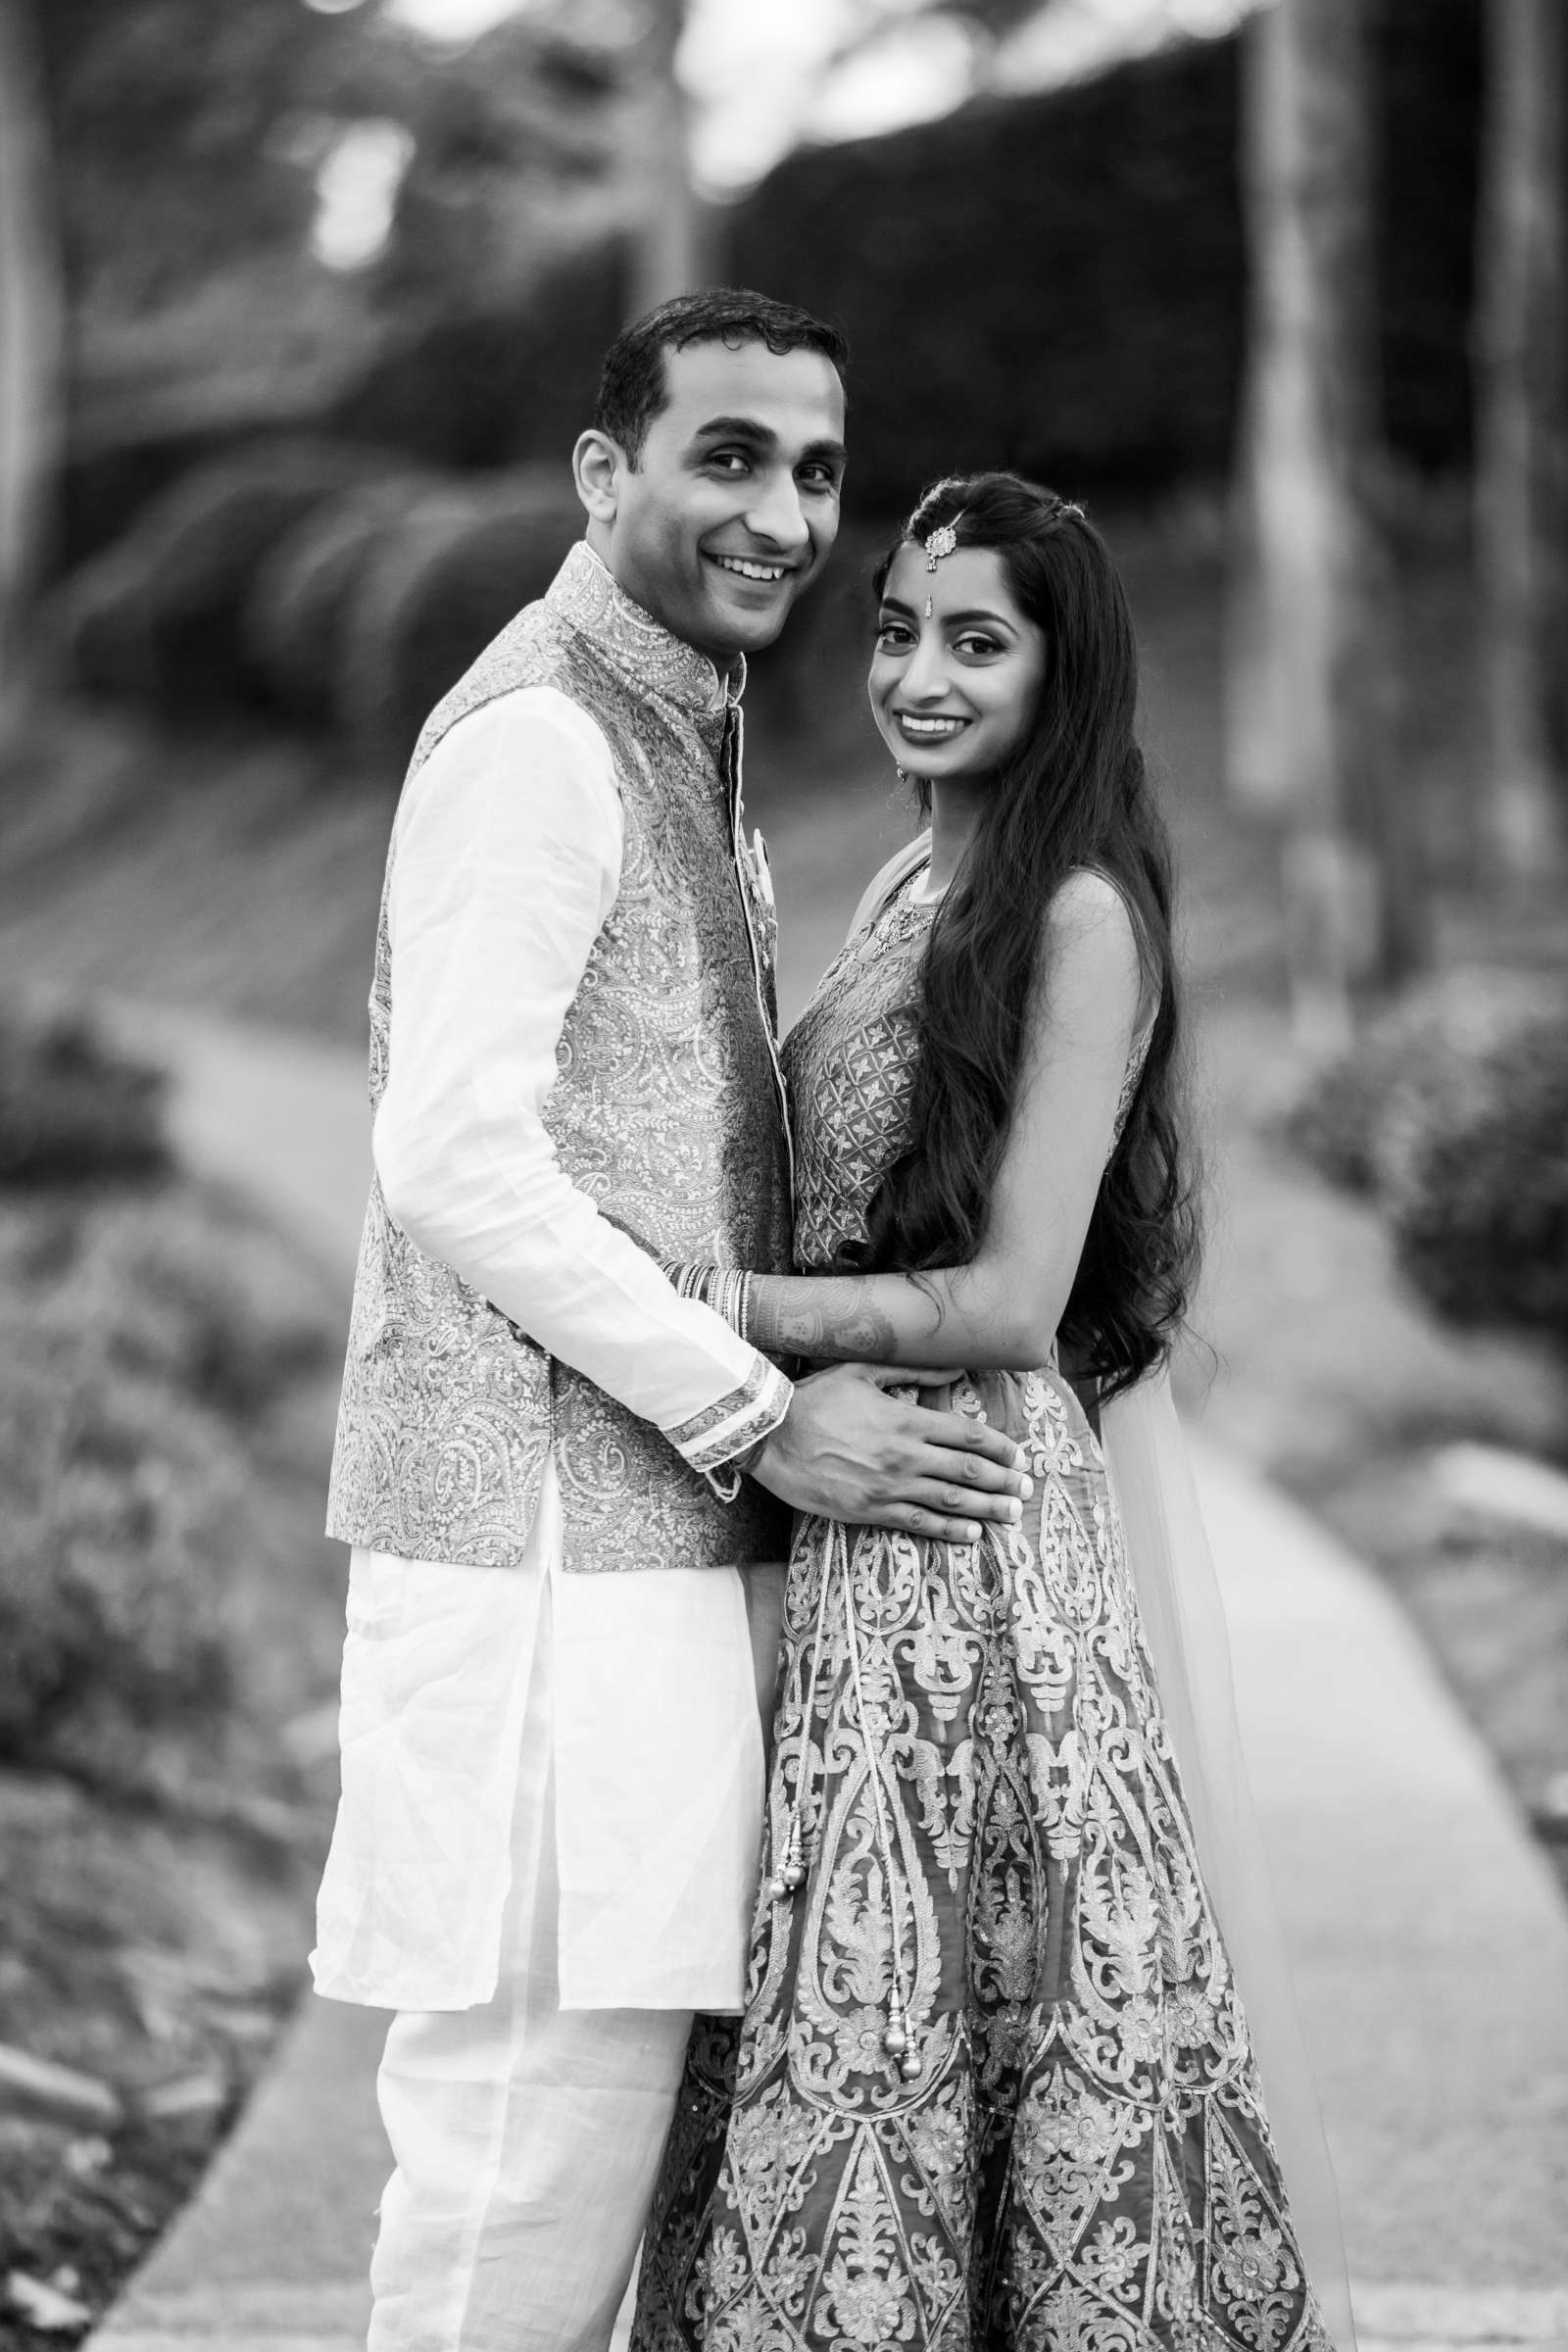 The Westin Carlsbad Resort and Spa Wedding coordinated by Shilpa Patel Events, Ami and Amit Wedding Photo #115 by True Photography